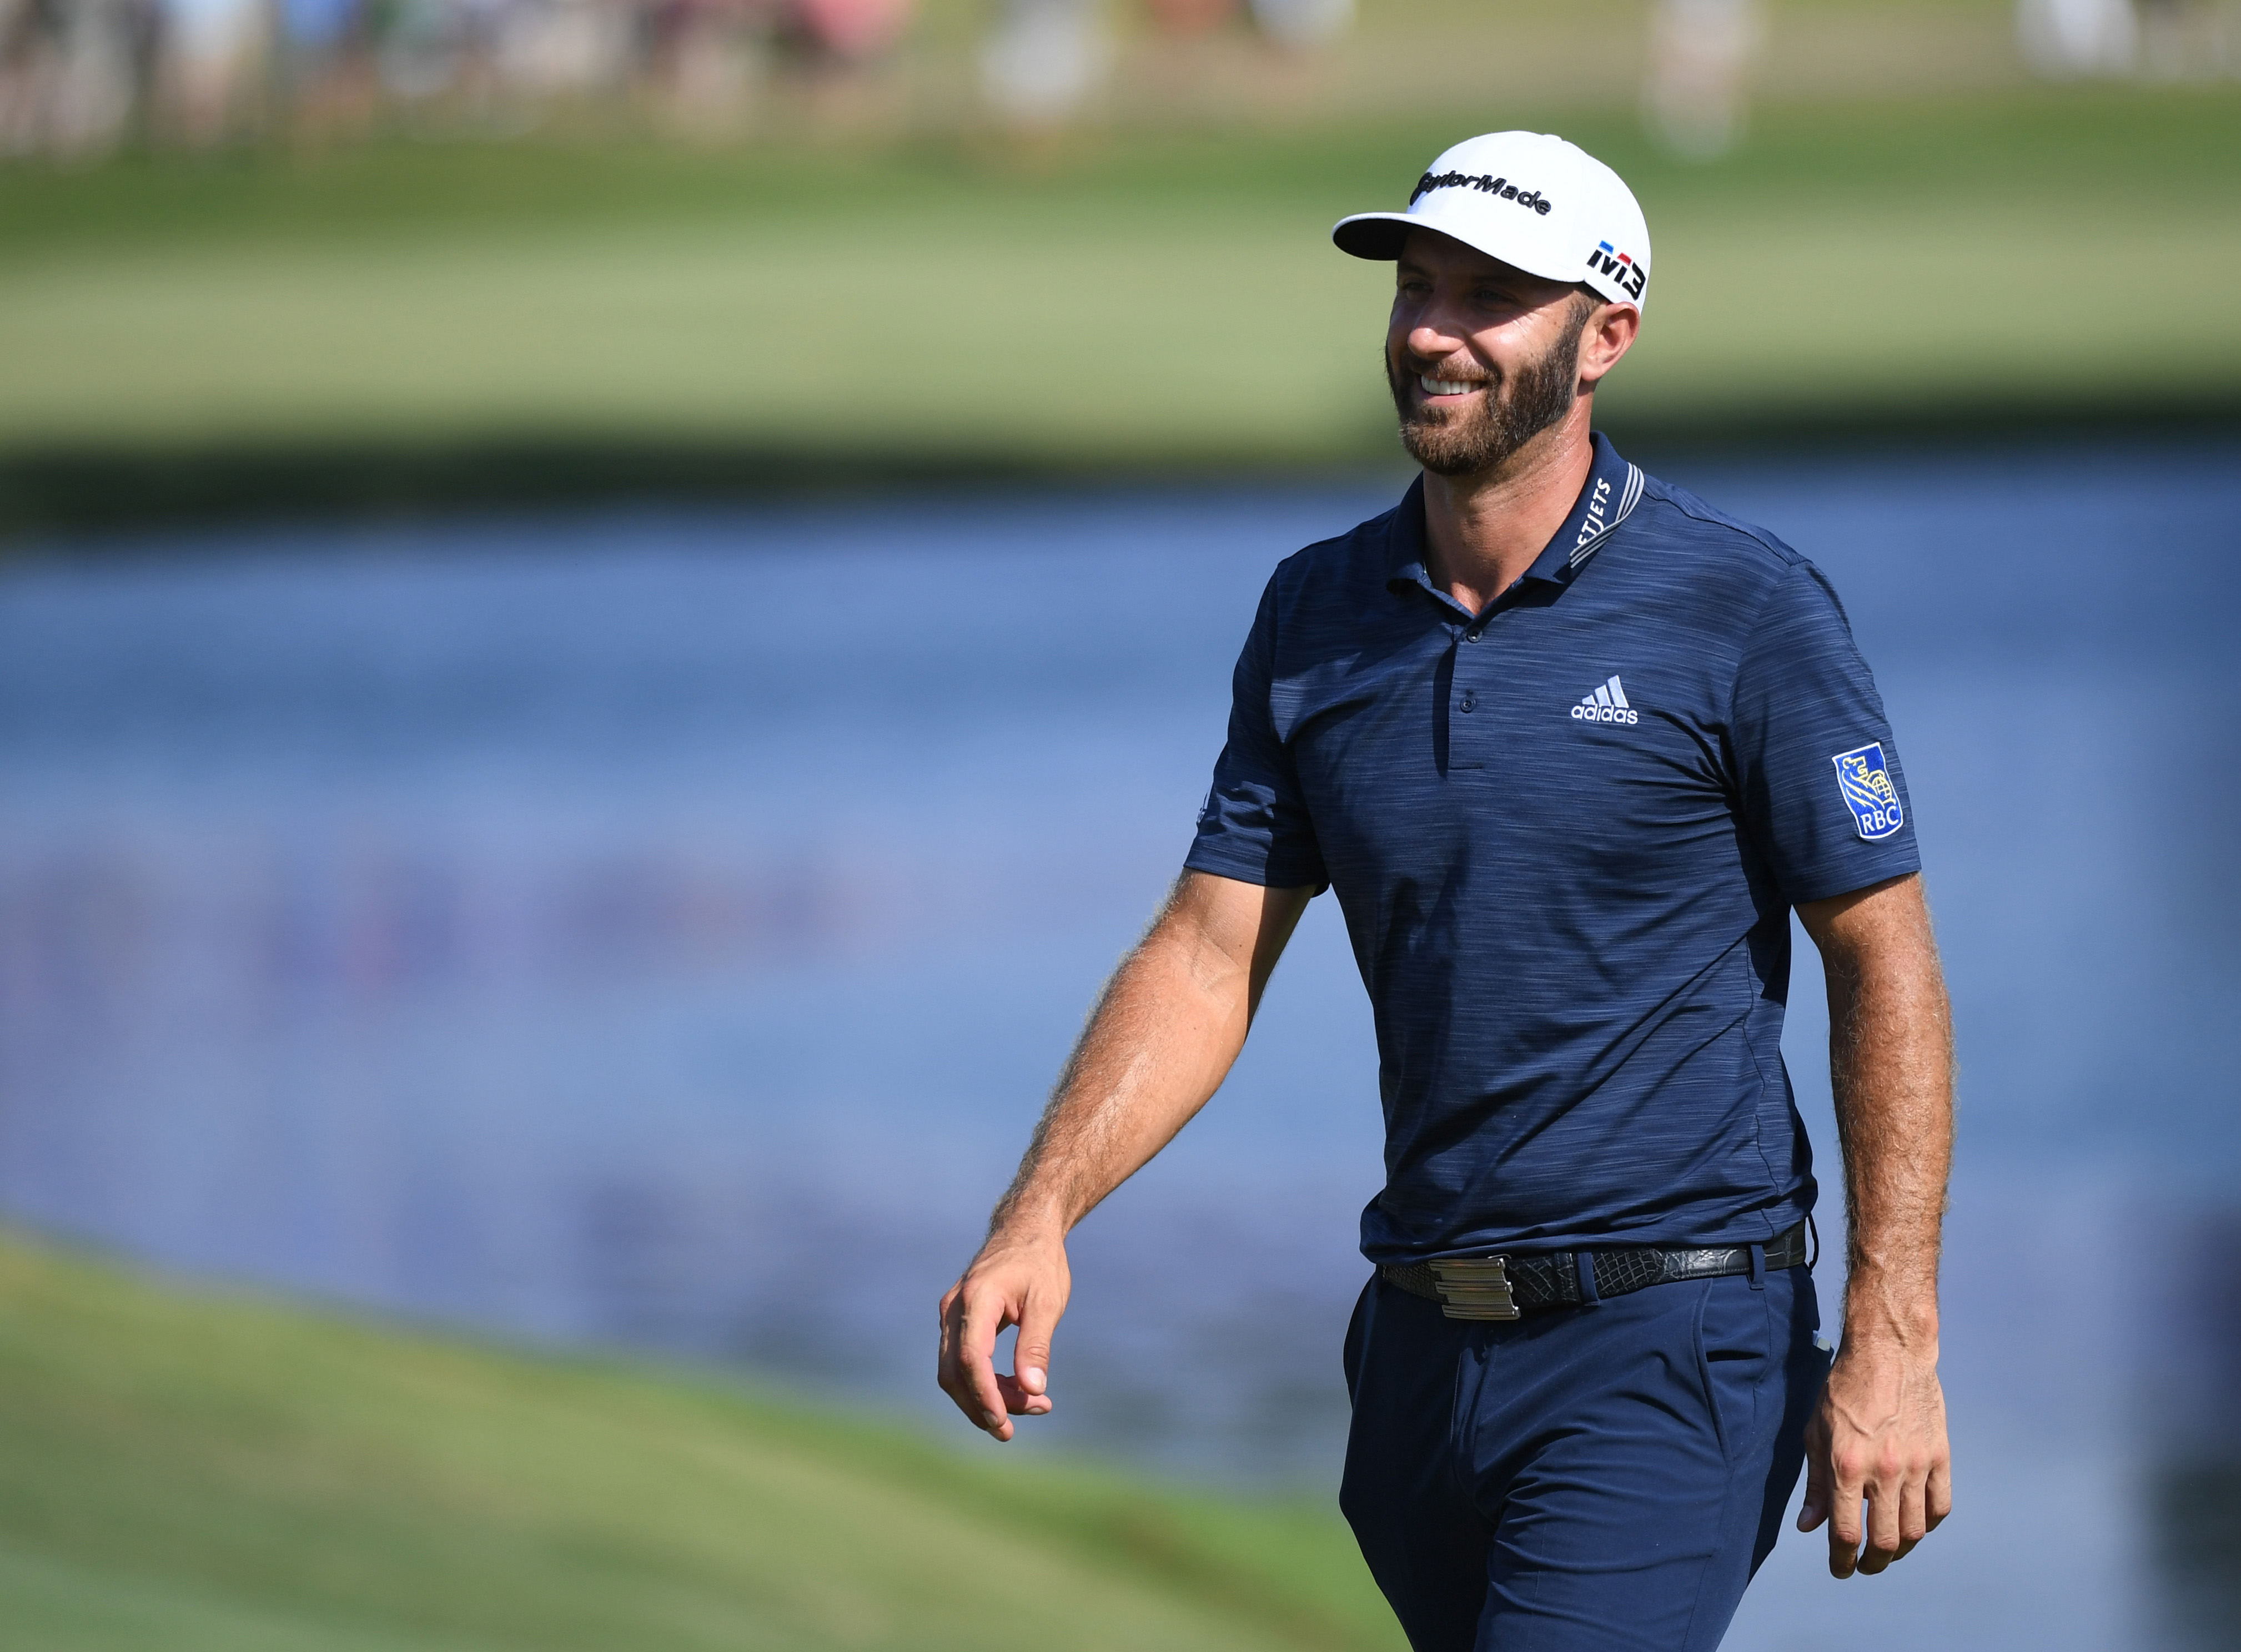 Dustin Johnson wins the Masters